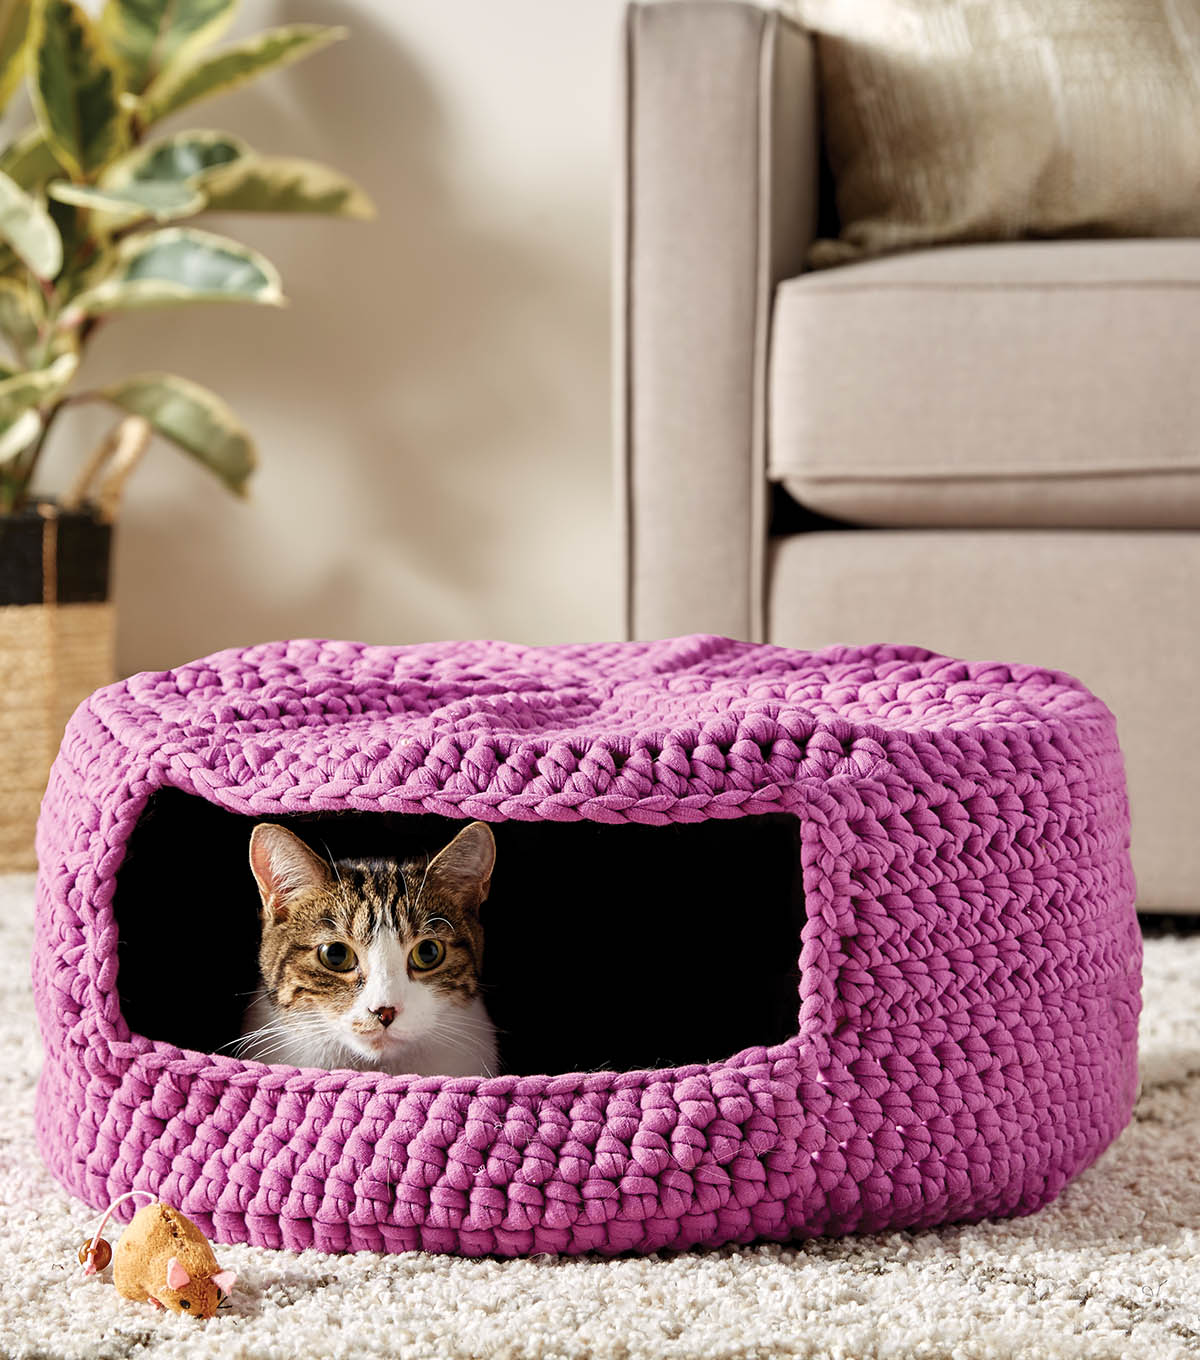 How To Make A Crochet Cat Bed Joann